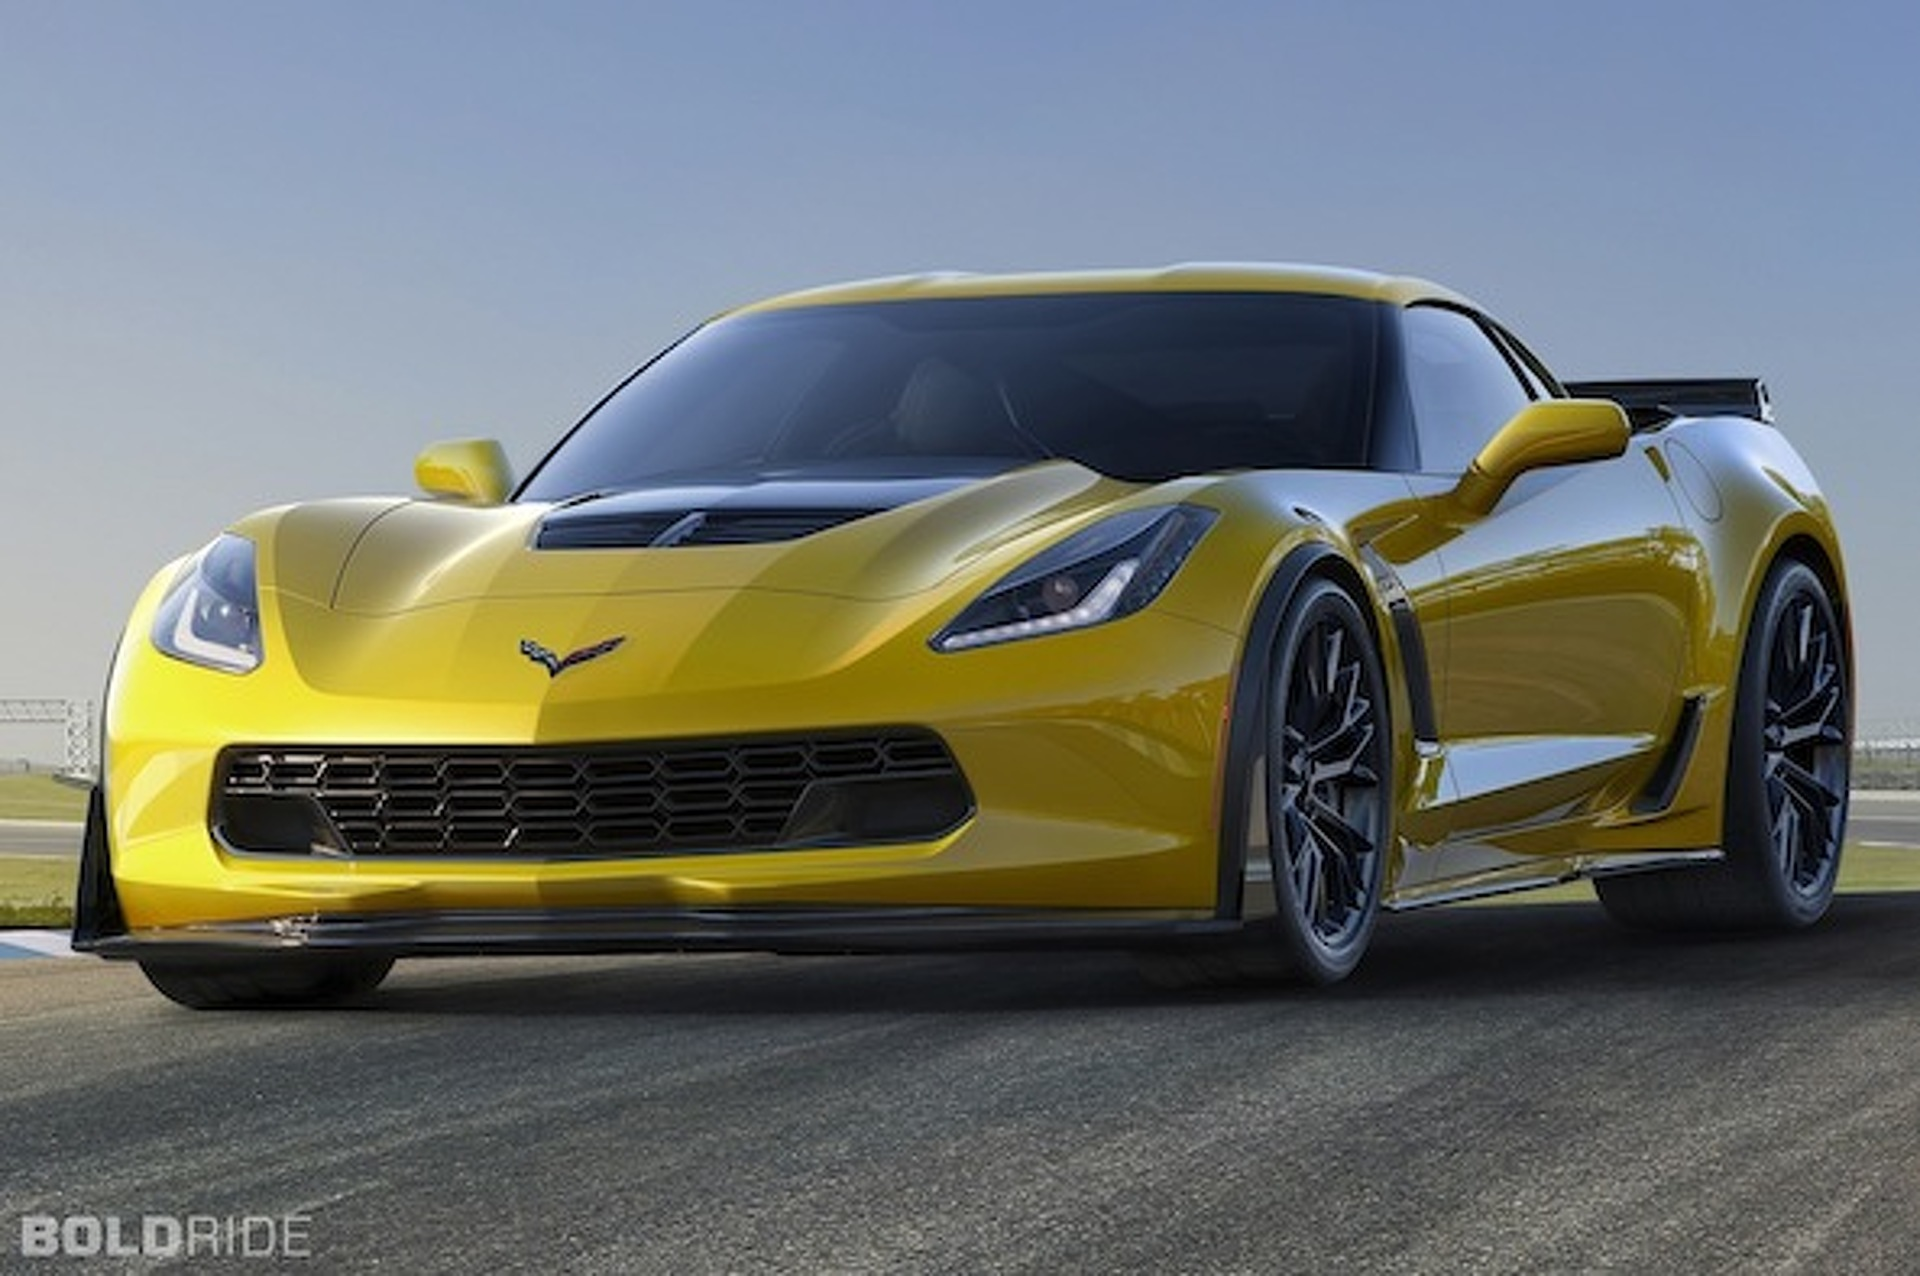 6 Sportscars You Should Look Forward To in 2014